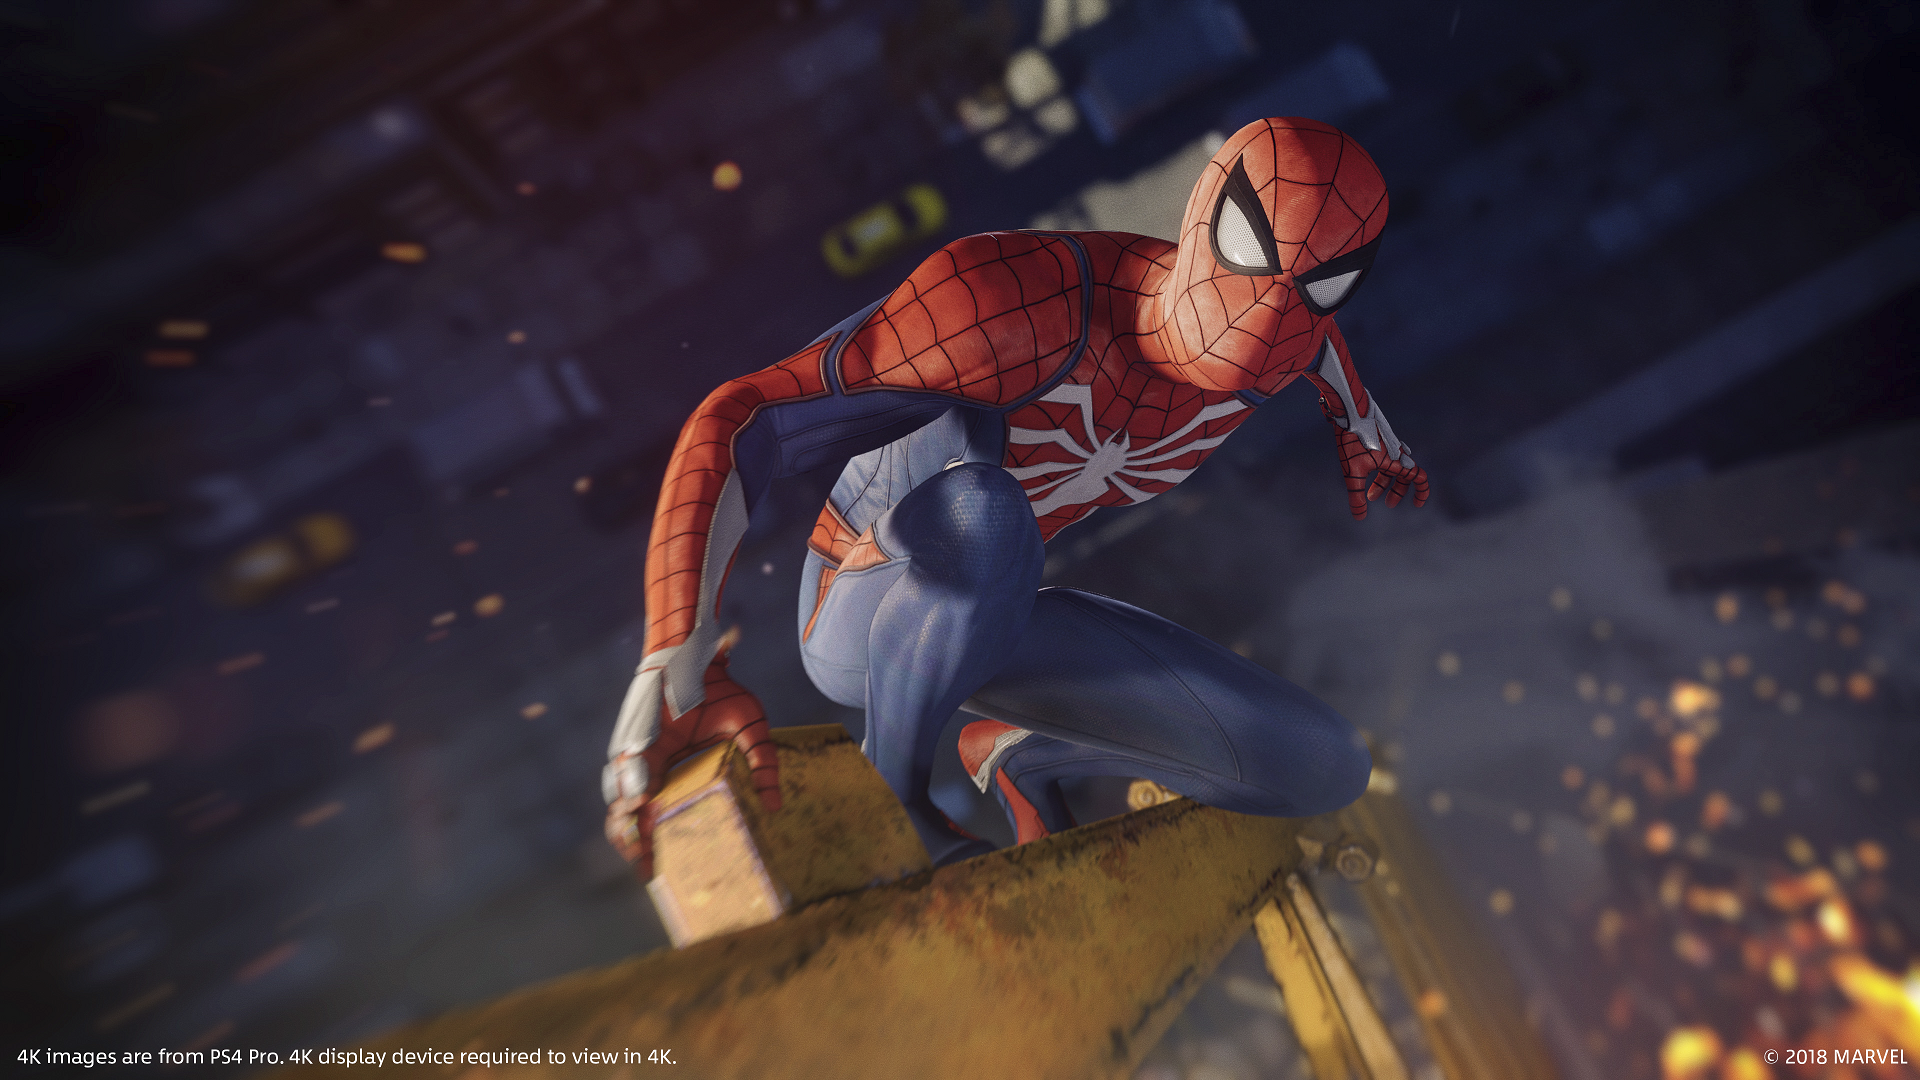 captura de pantalla de marvel's spider-man